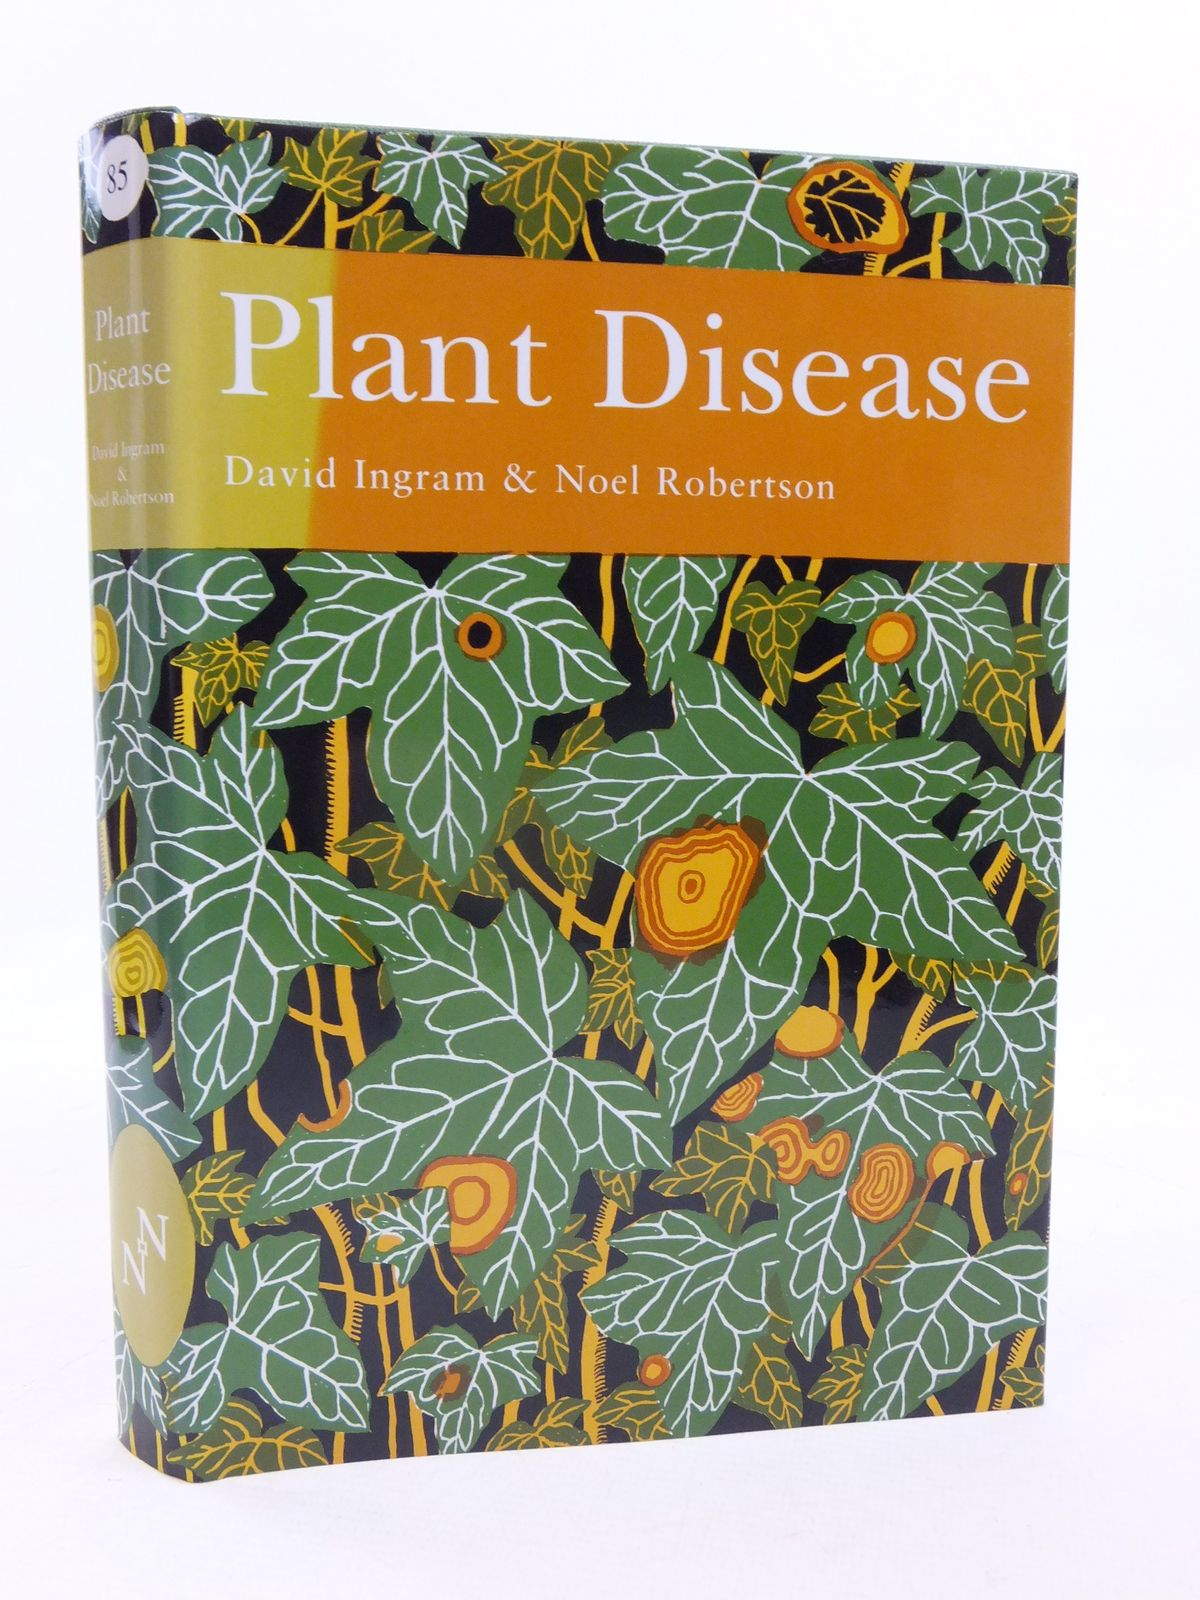 Photo of PLANT DISEASE A NATURAL HISTORY (NN 85) written by Ingram, David Robertson, Noel published by Harper Collins (STOCK CODE: 2116240)  for sale by Stella & Rose's Books